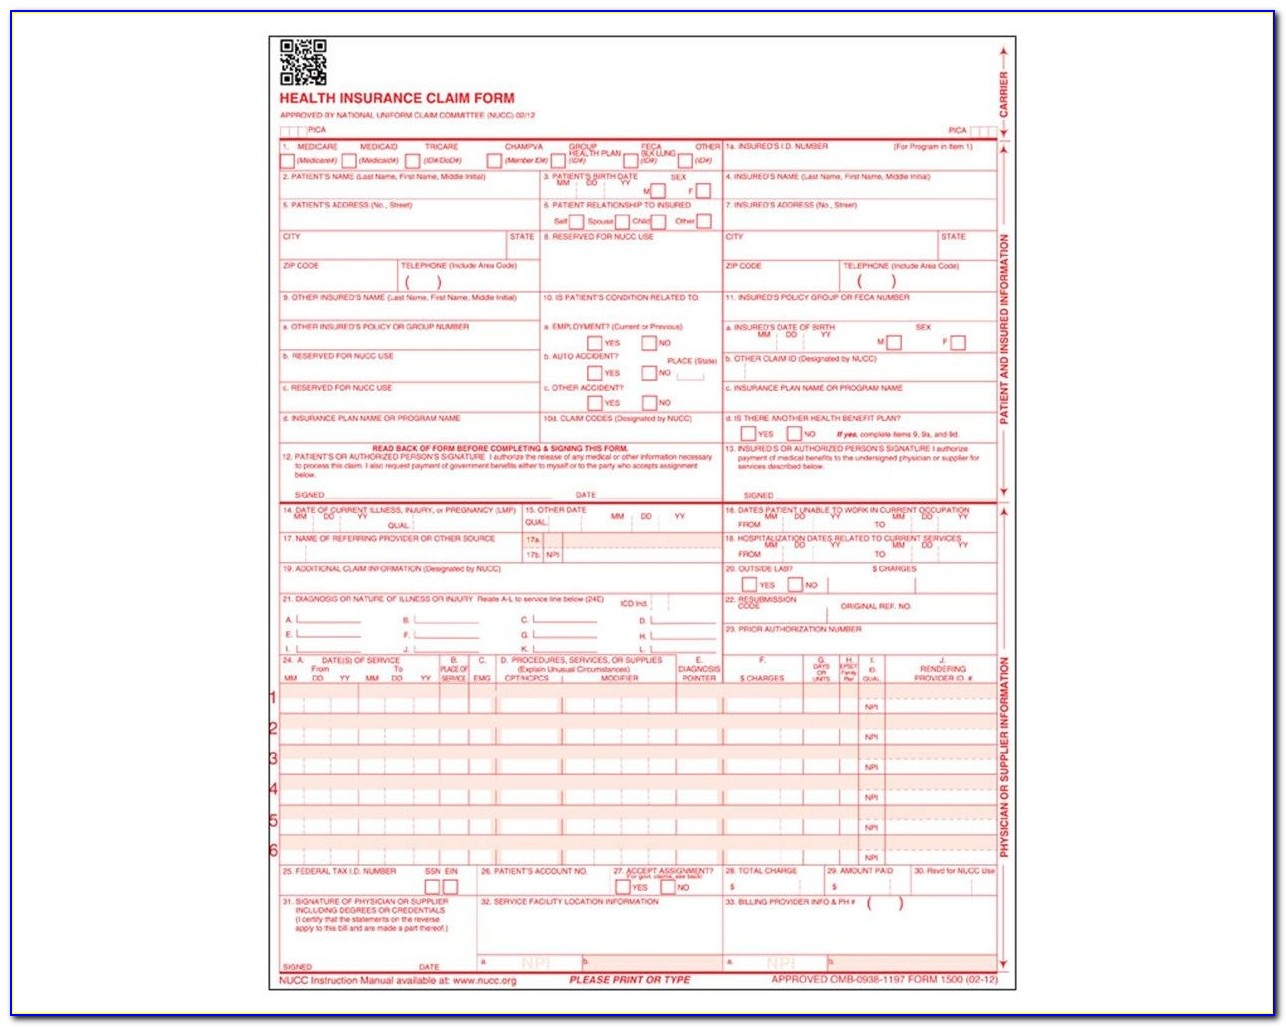 9352 14 Cms 1500 Claim Forms, Hcfa (version 02/12), 1 Part Throughout Cms 1500 Form Printable